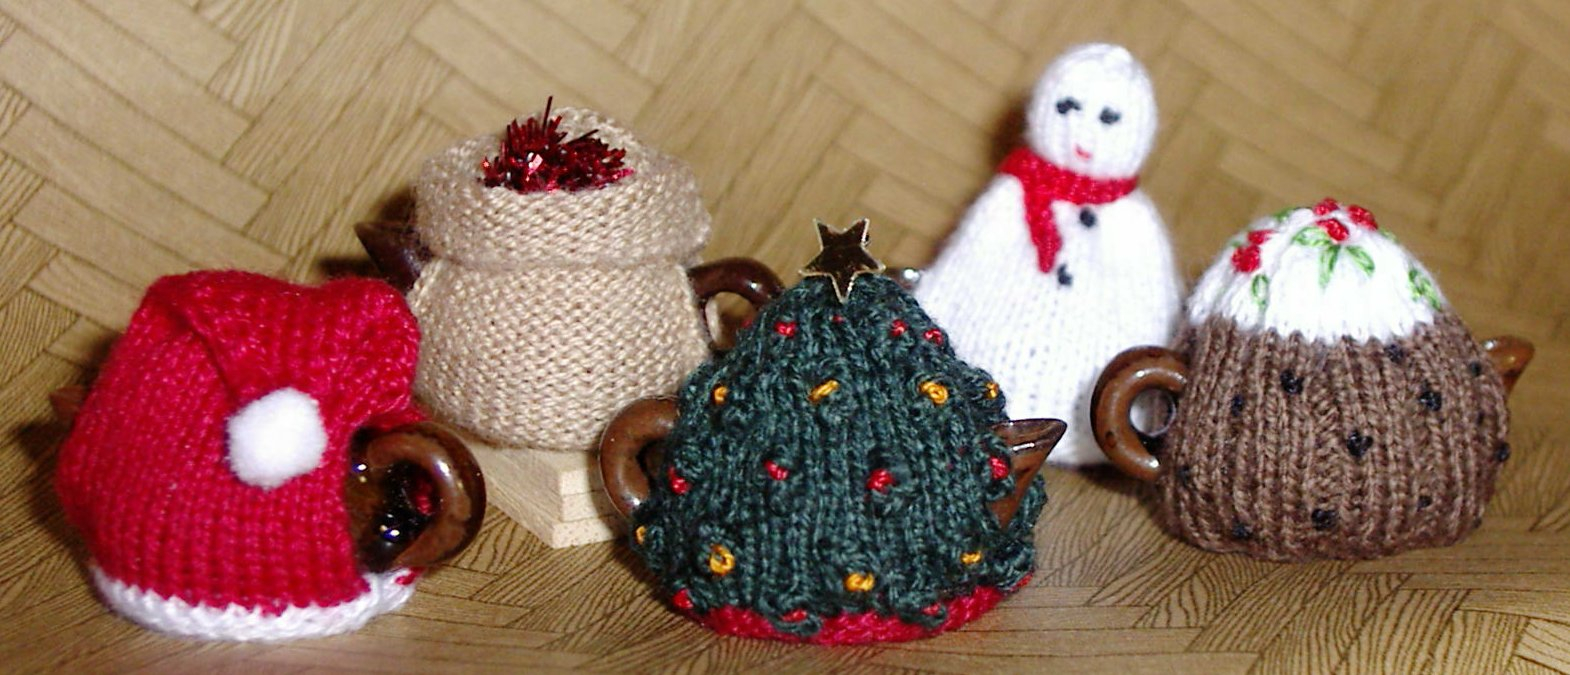 Tea Cozy Patterns To Knit Knitting Patterns For Tea Cosy Free Knitting Patterns